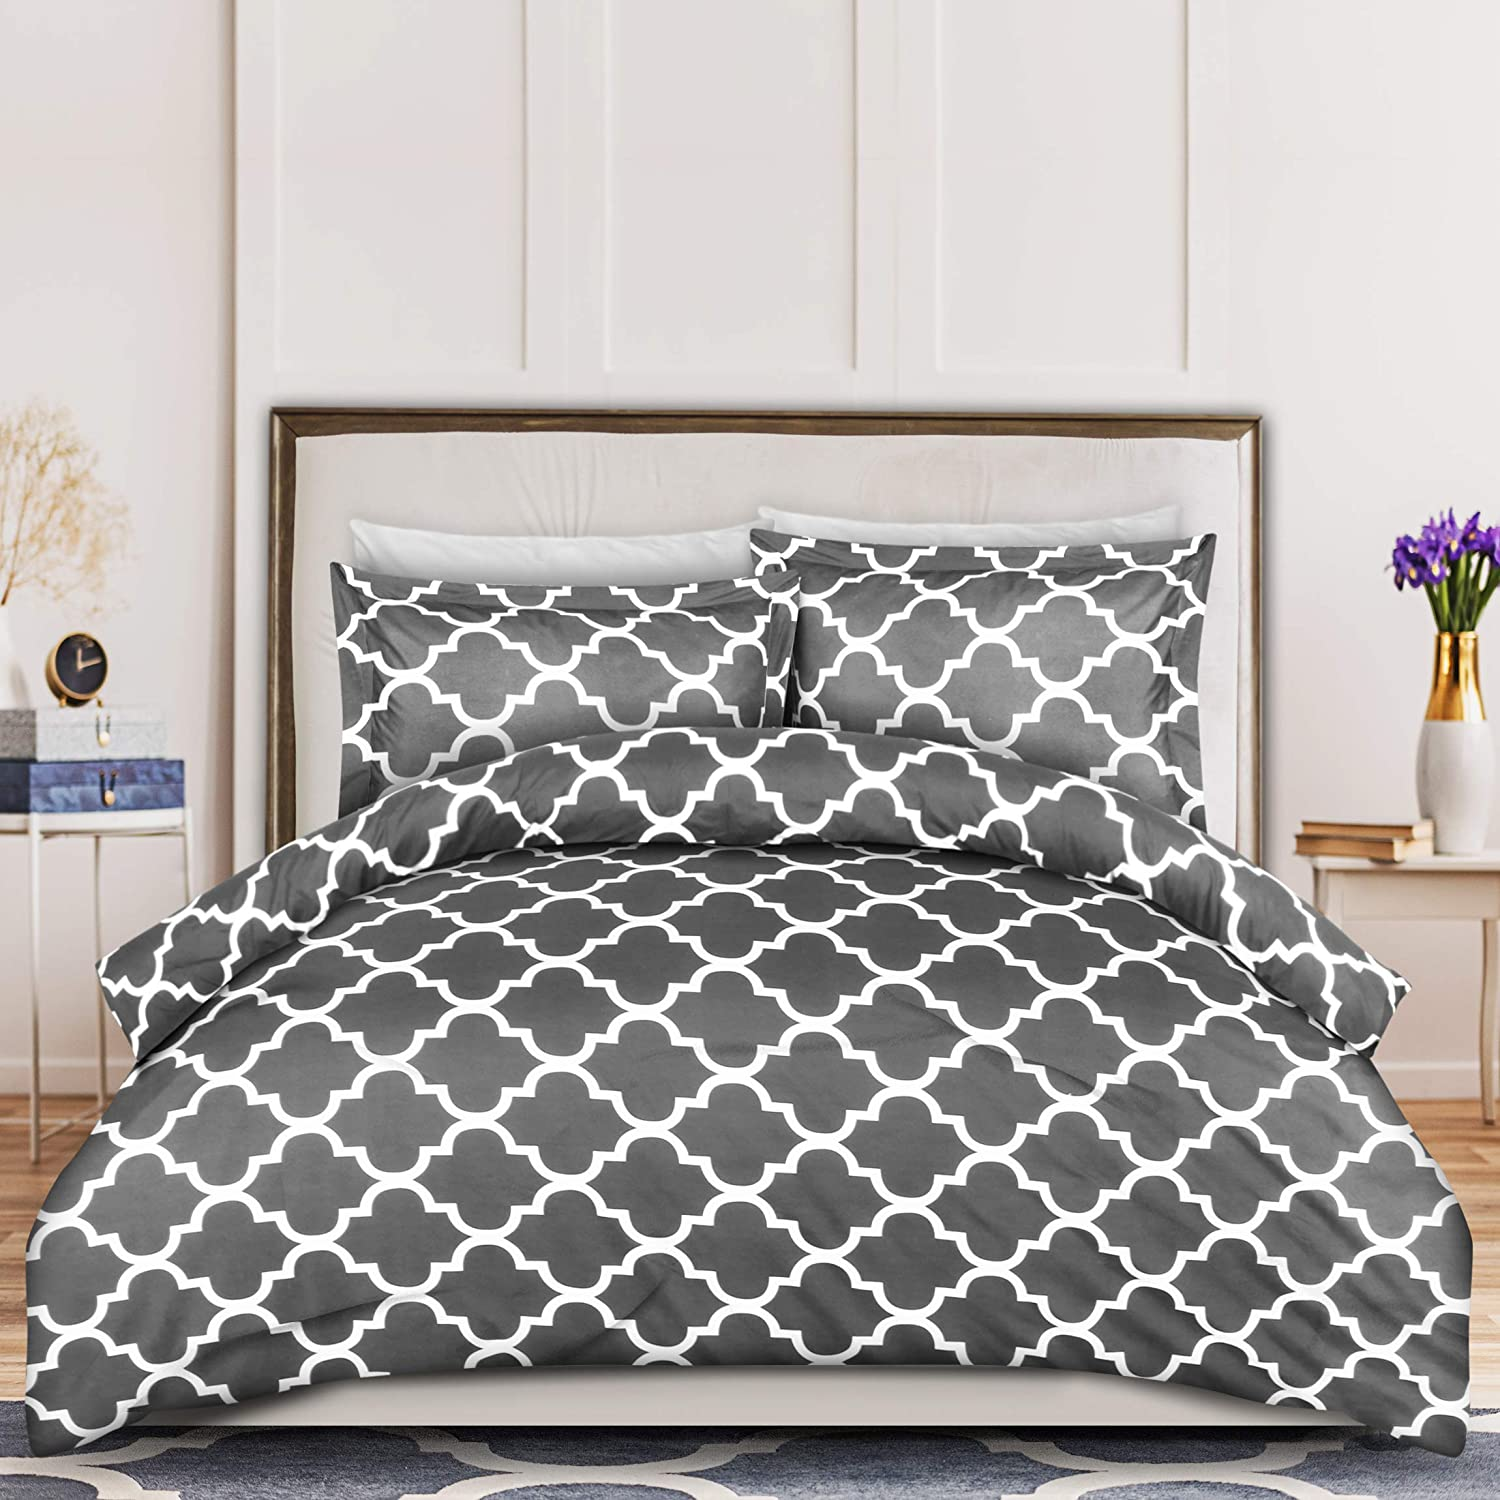 Utopia Bedding 3-Piece Duvet Cover Set – 1 Duvet Cover with 2 Pillow Shams - Comforter Cover with Zipper Closure - Soft Brushed Microfiber Fabric - Shrinkage and Fade Resistant - Easy Care (Queen, Quatrefoil Grey